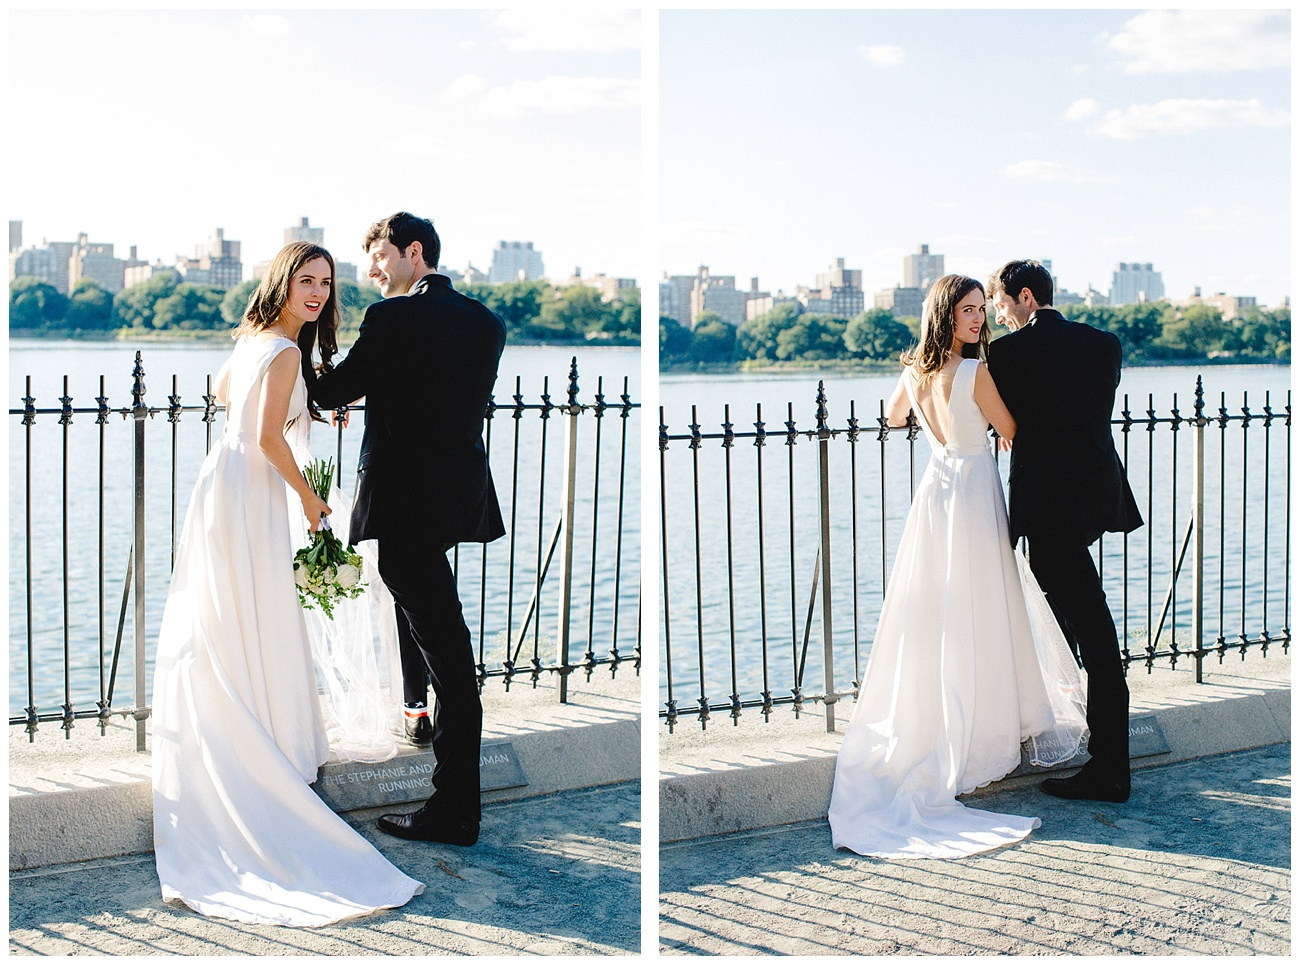 Christine Ted NYC Elopement Wedding_0029